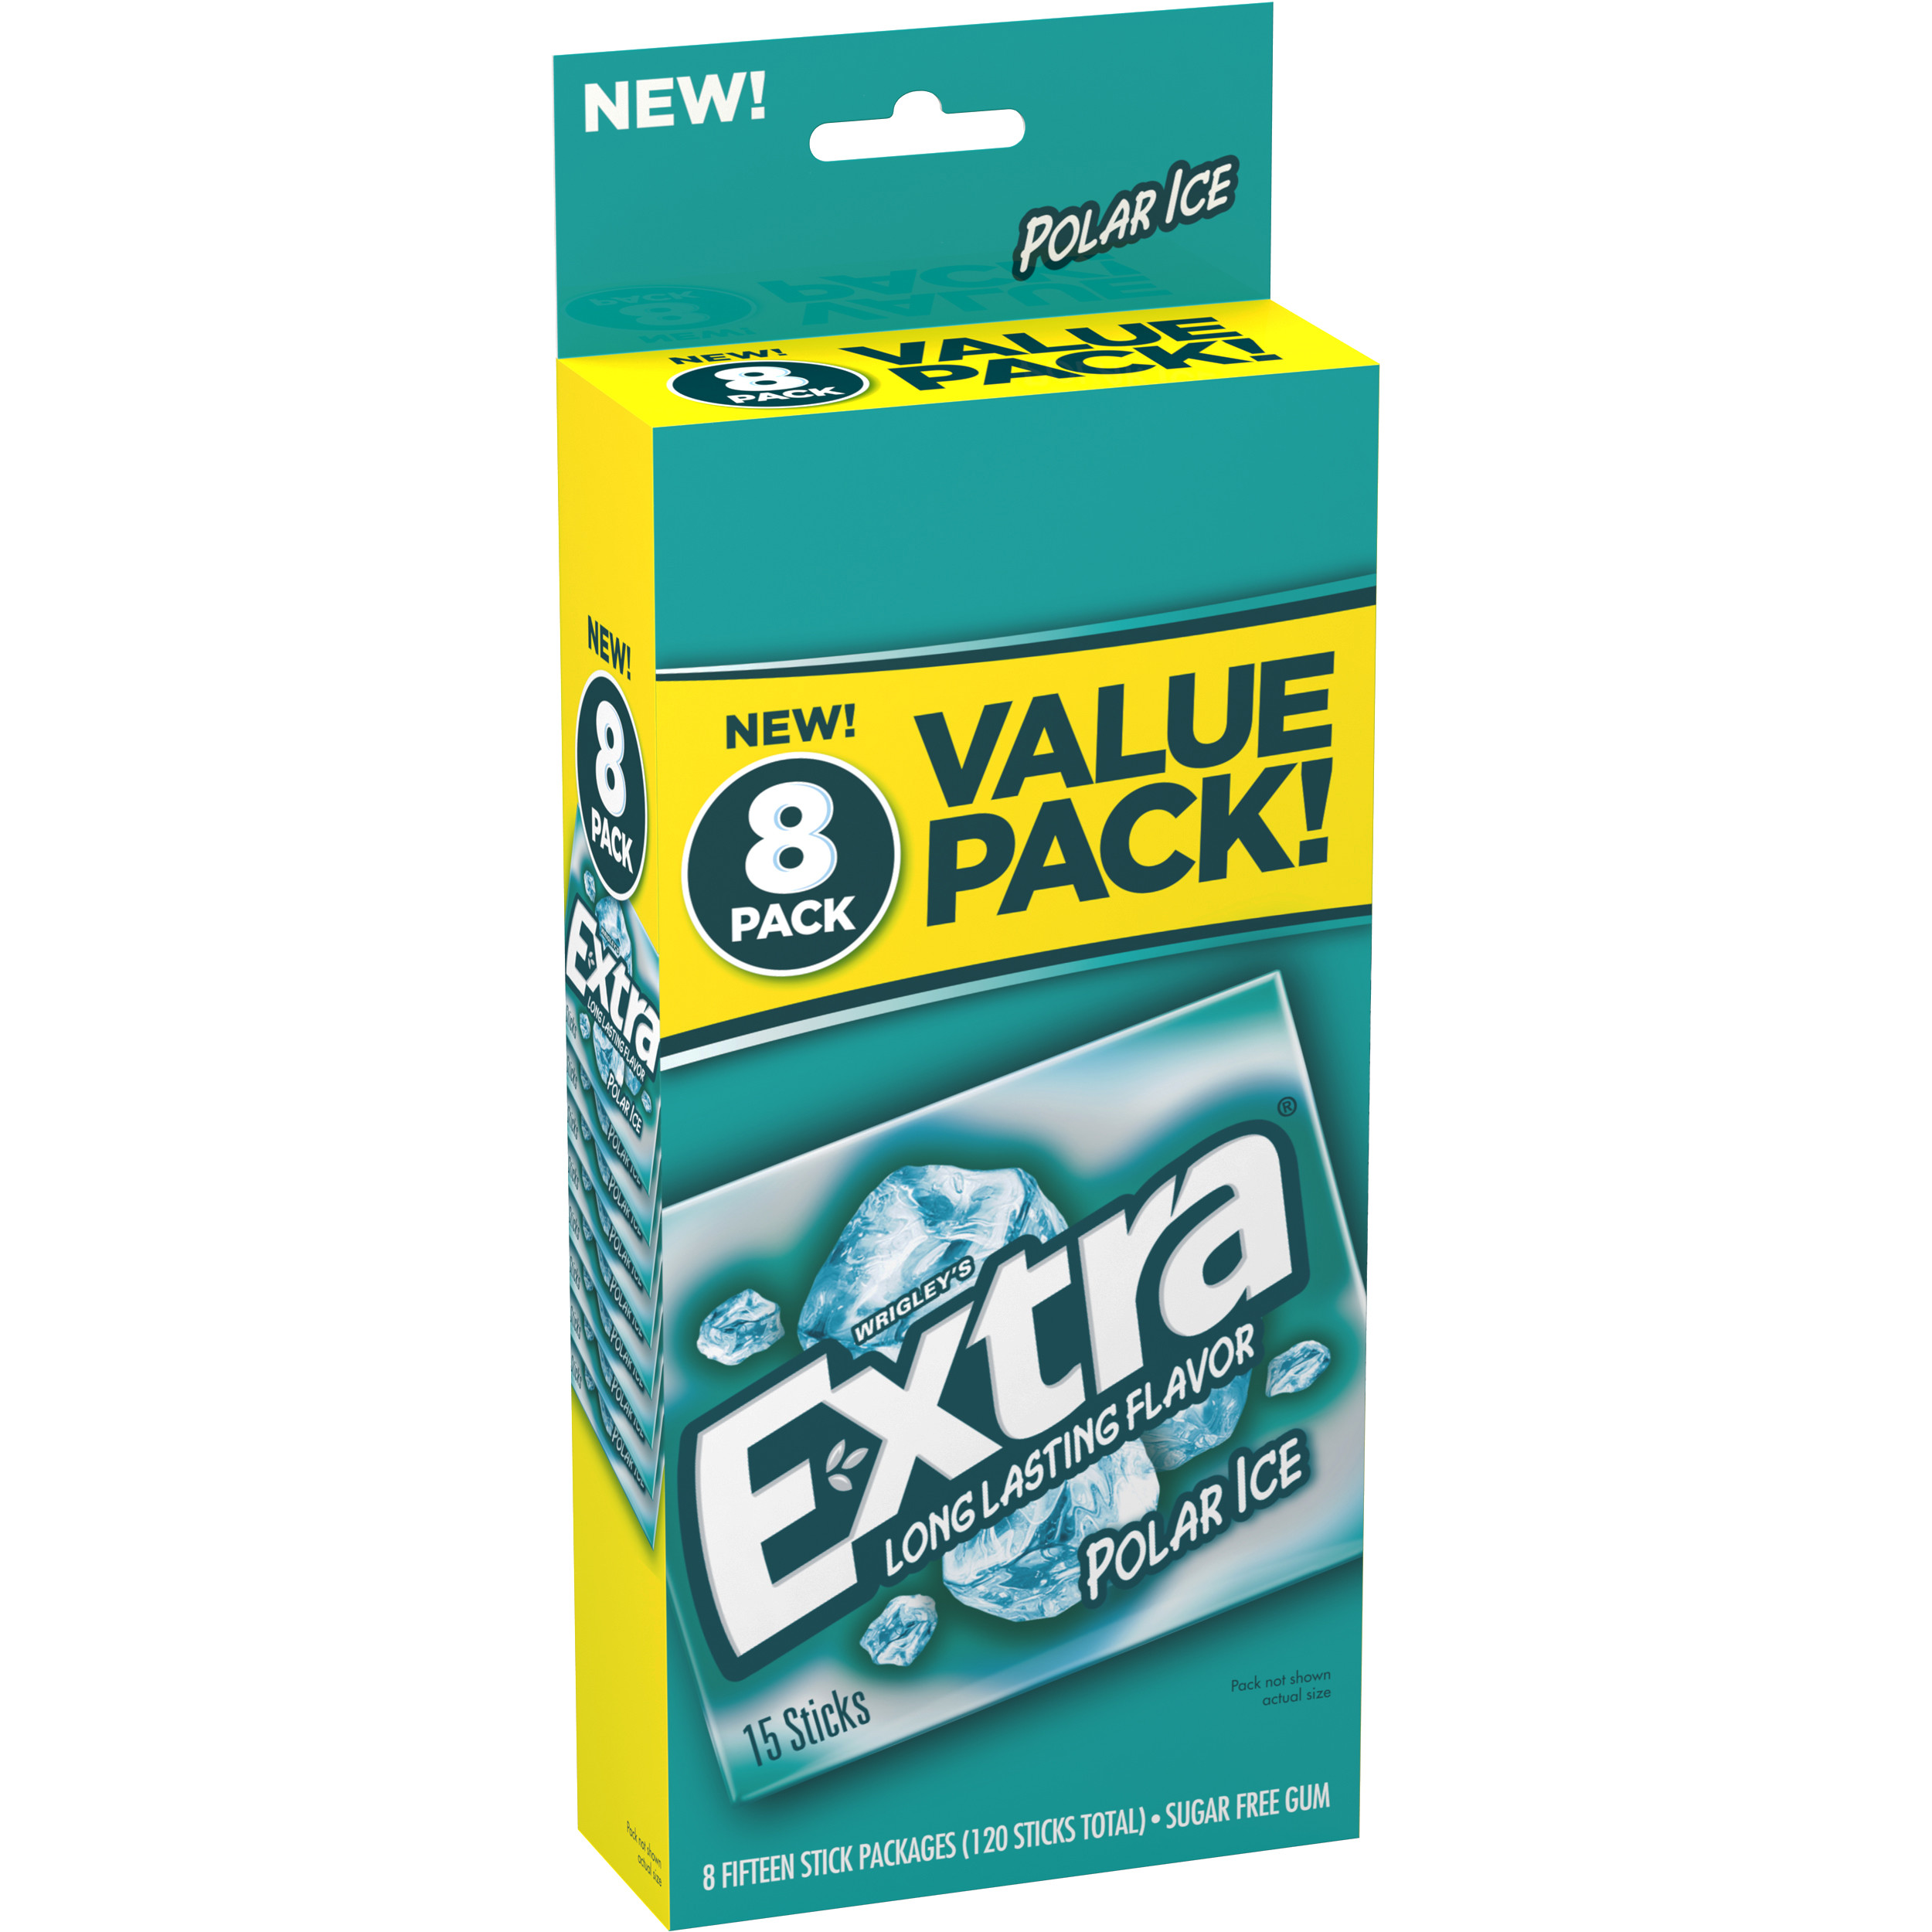 Extra Polar Ice Sugar Free Gum, 14 pc, 8 count by Generic